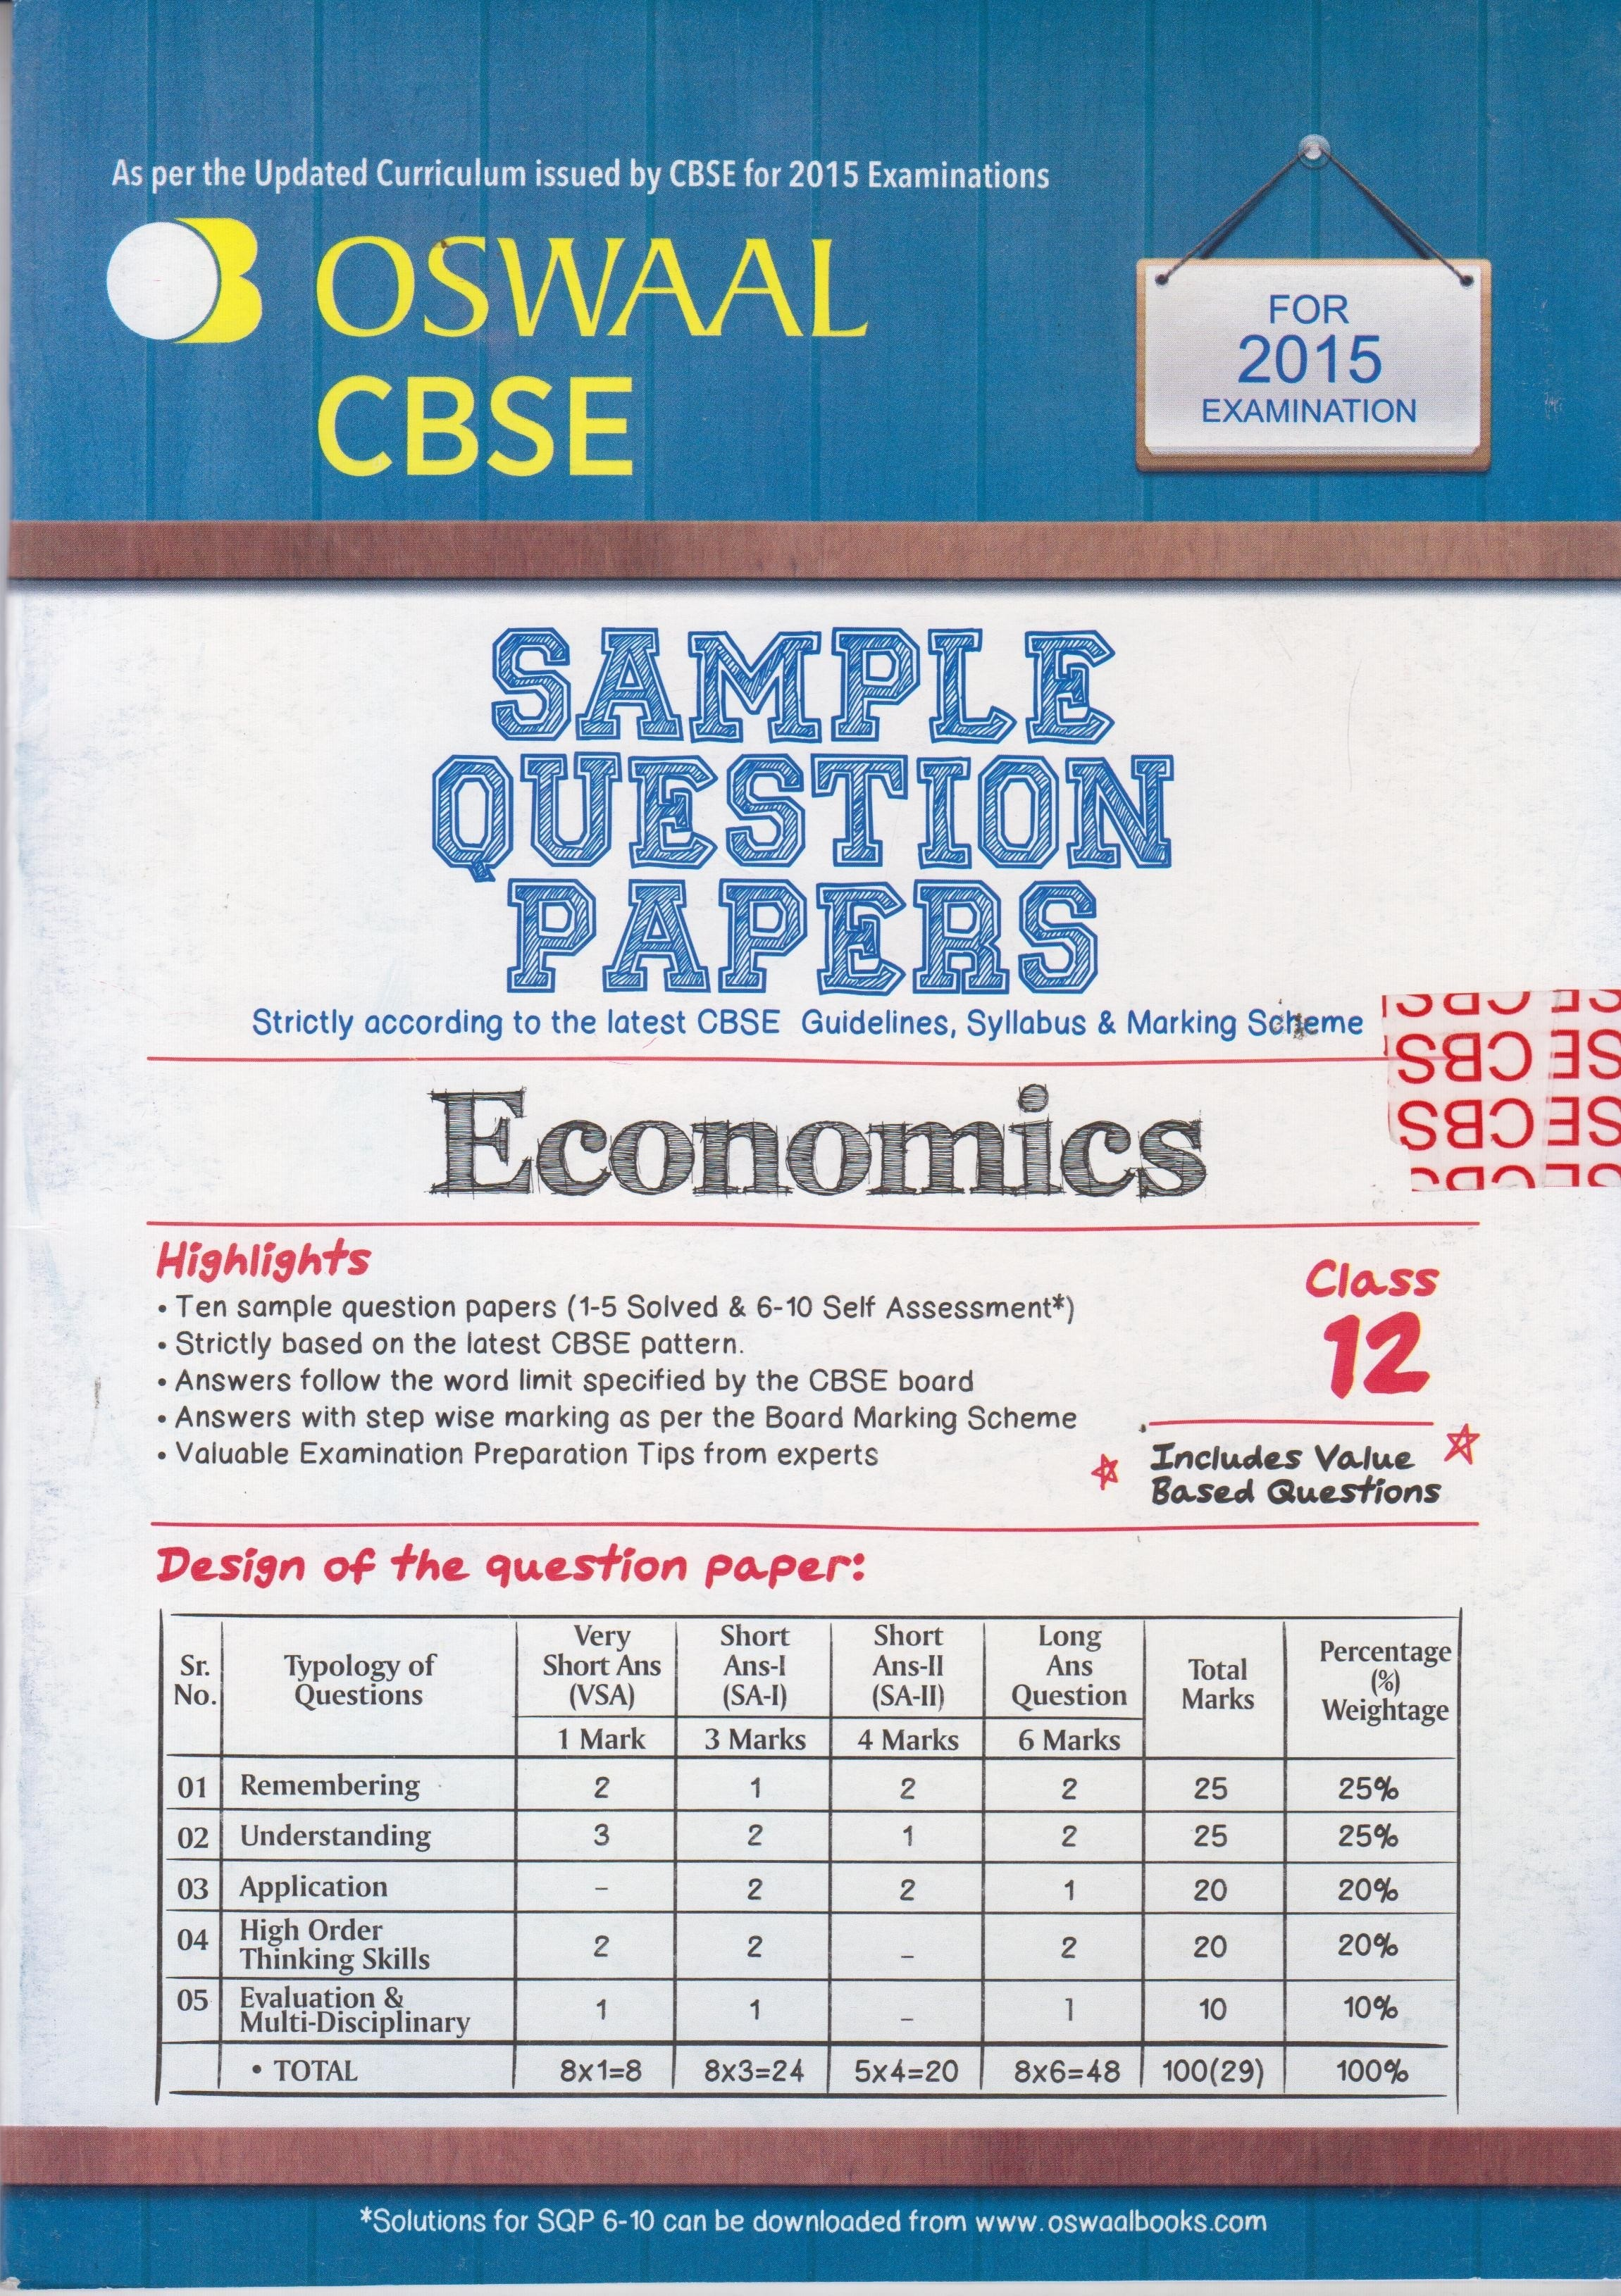 Research papers on economics and finance